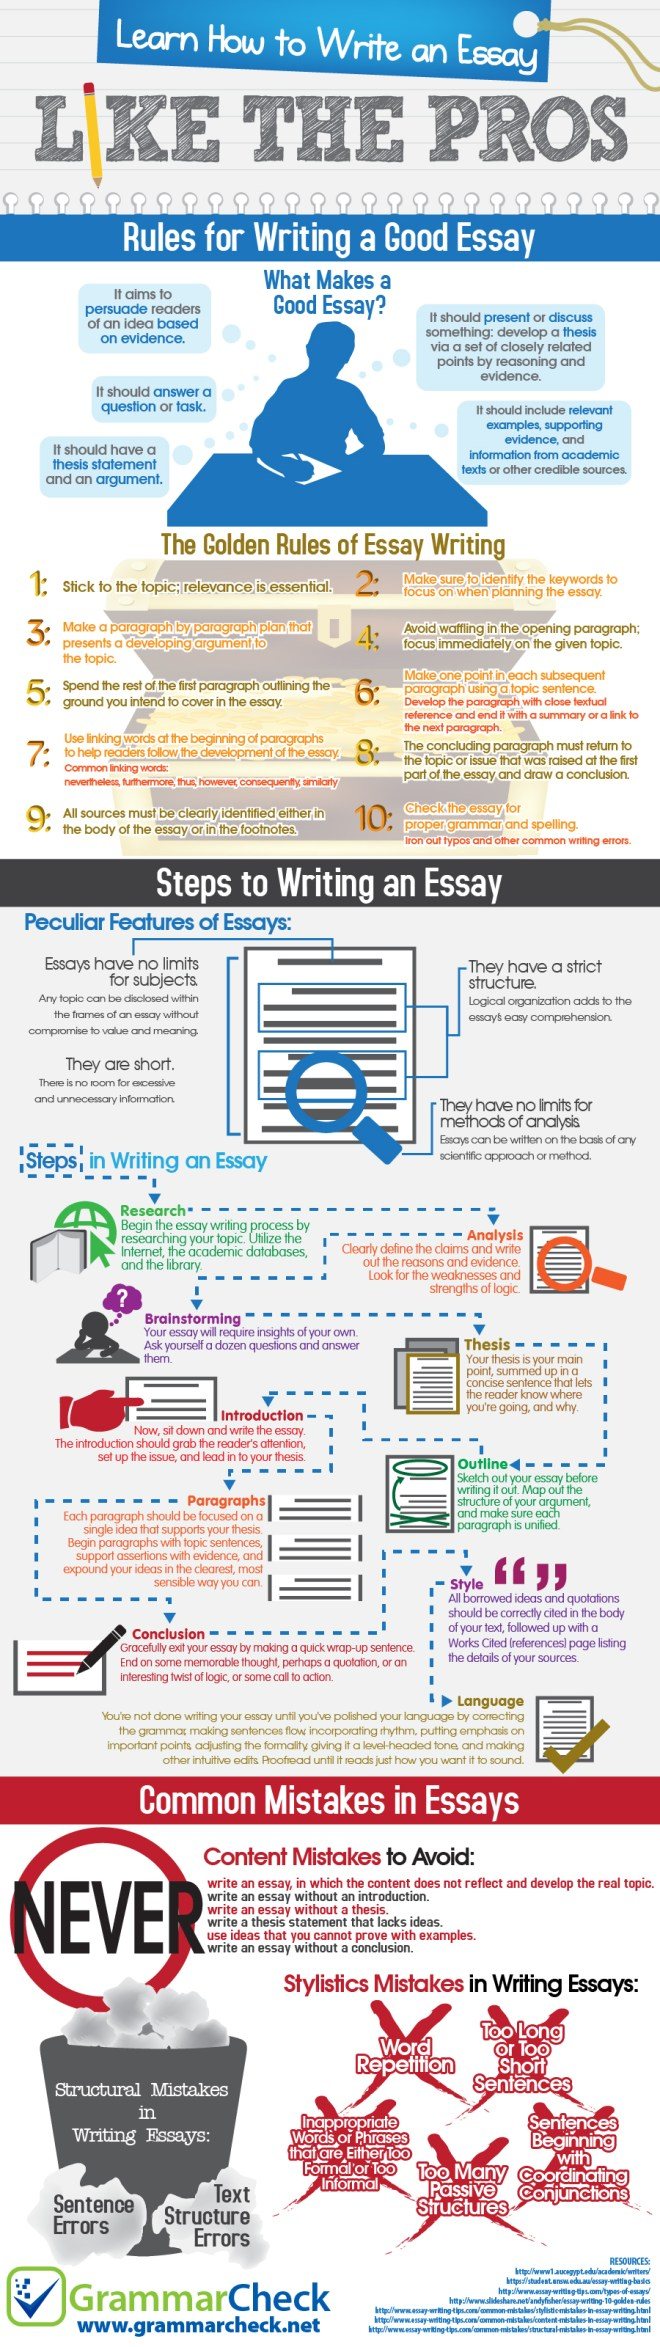 how can i practice writing essays